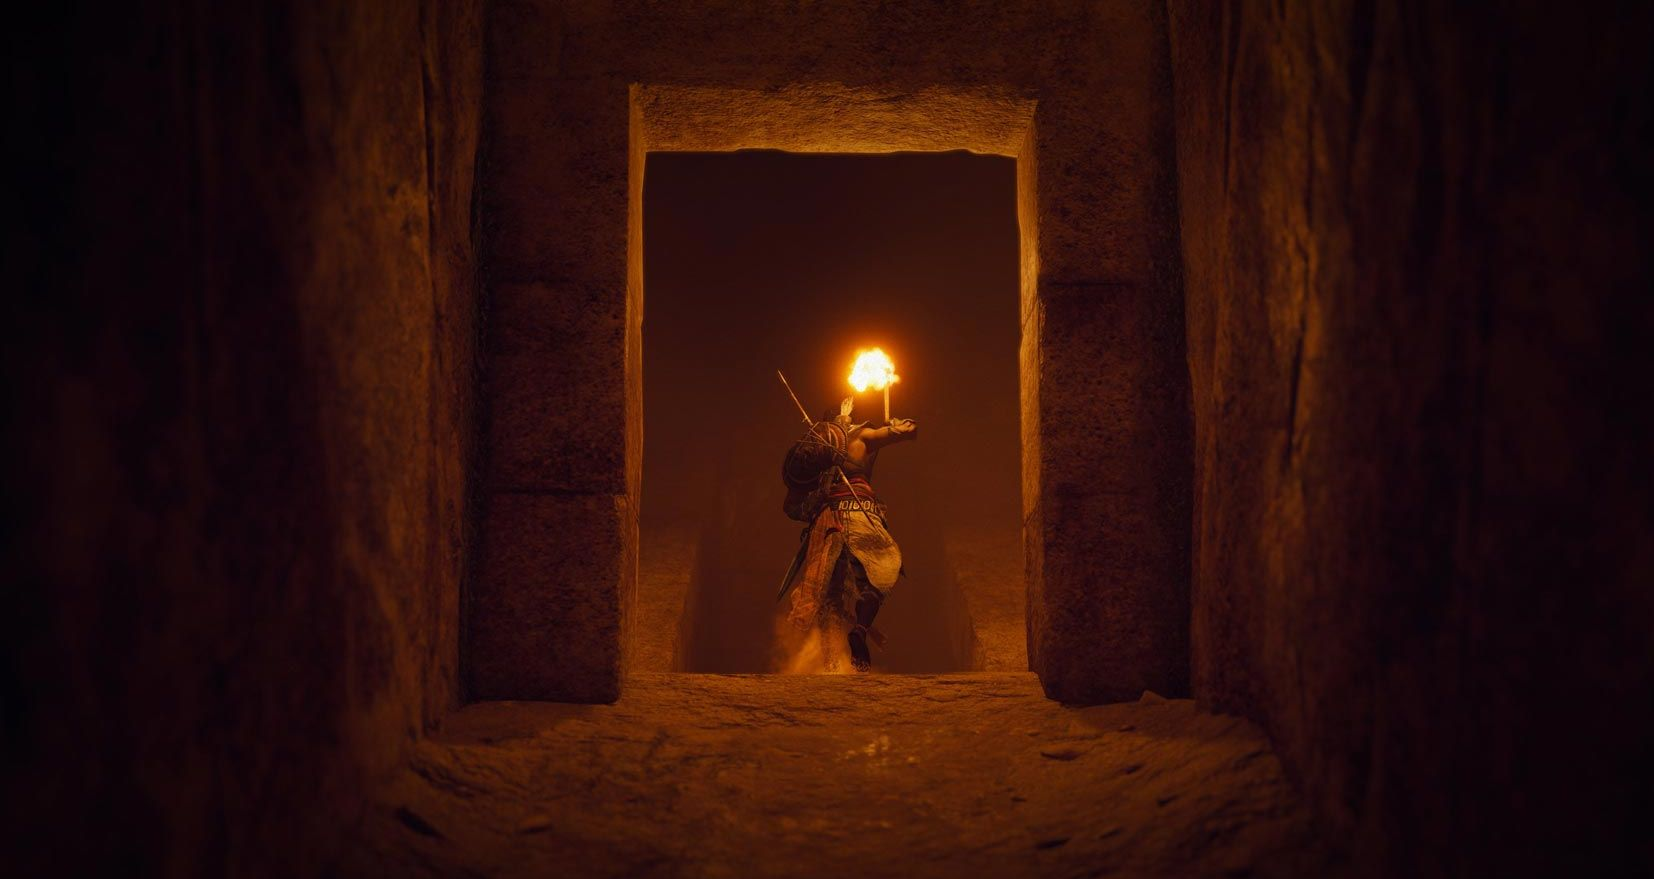 Assassin's Creed: Origins is Getting New Game Plus Soon